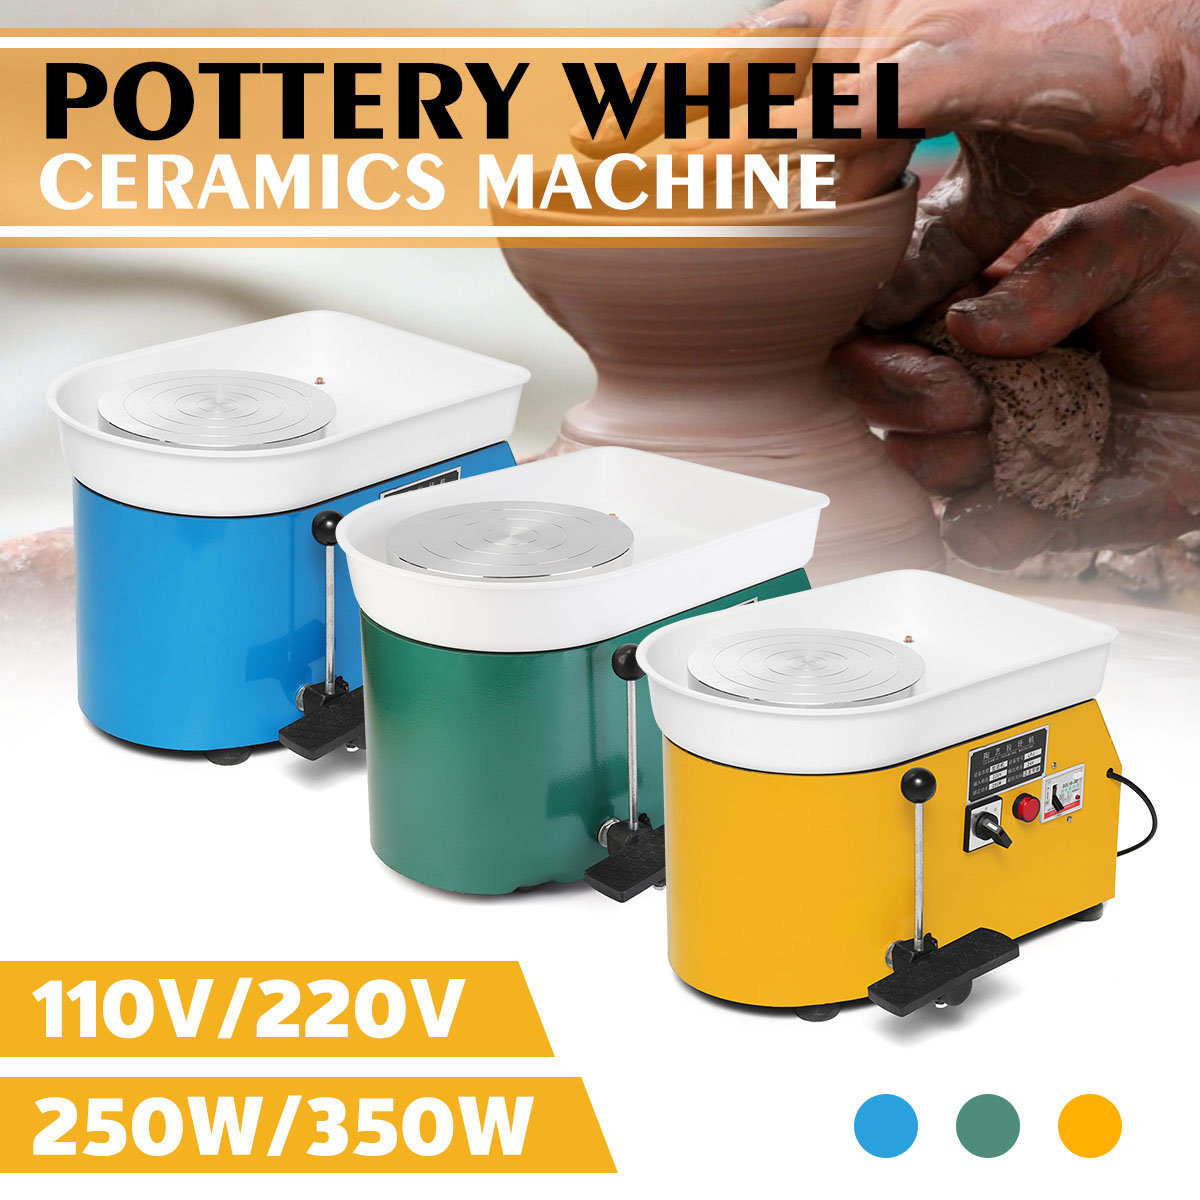 110V/220V Pottery Forming Machine 250W/350W Electric Pottery Ceramics Wheel DIY Clay Tool With Tray For Ceramic Work 3 Colors